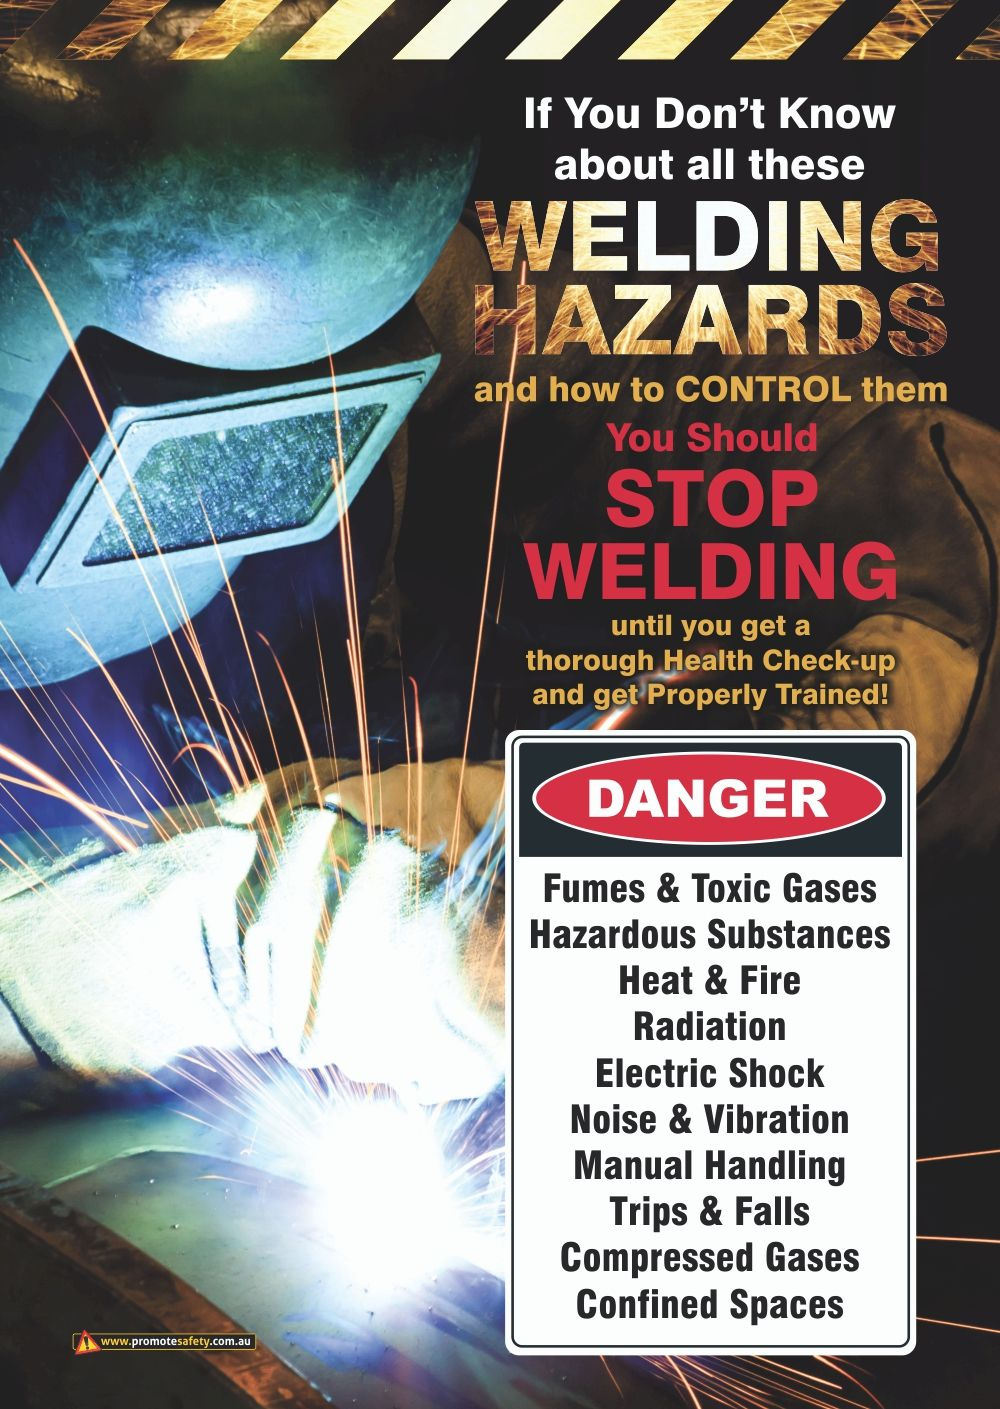 This A3 size Workplace Safety Poster is aimed at helping